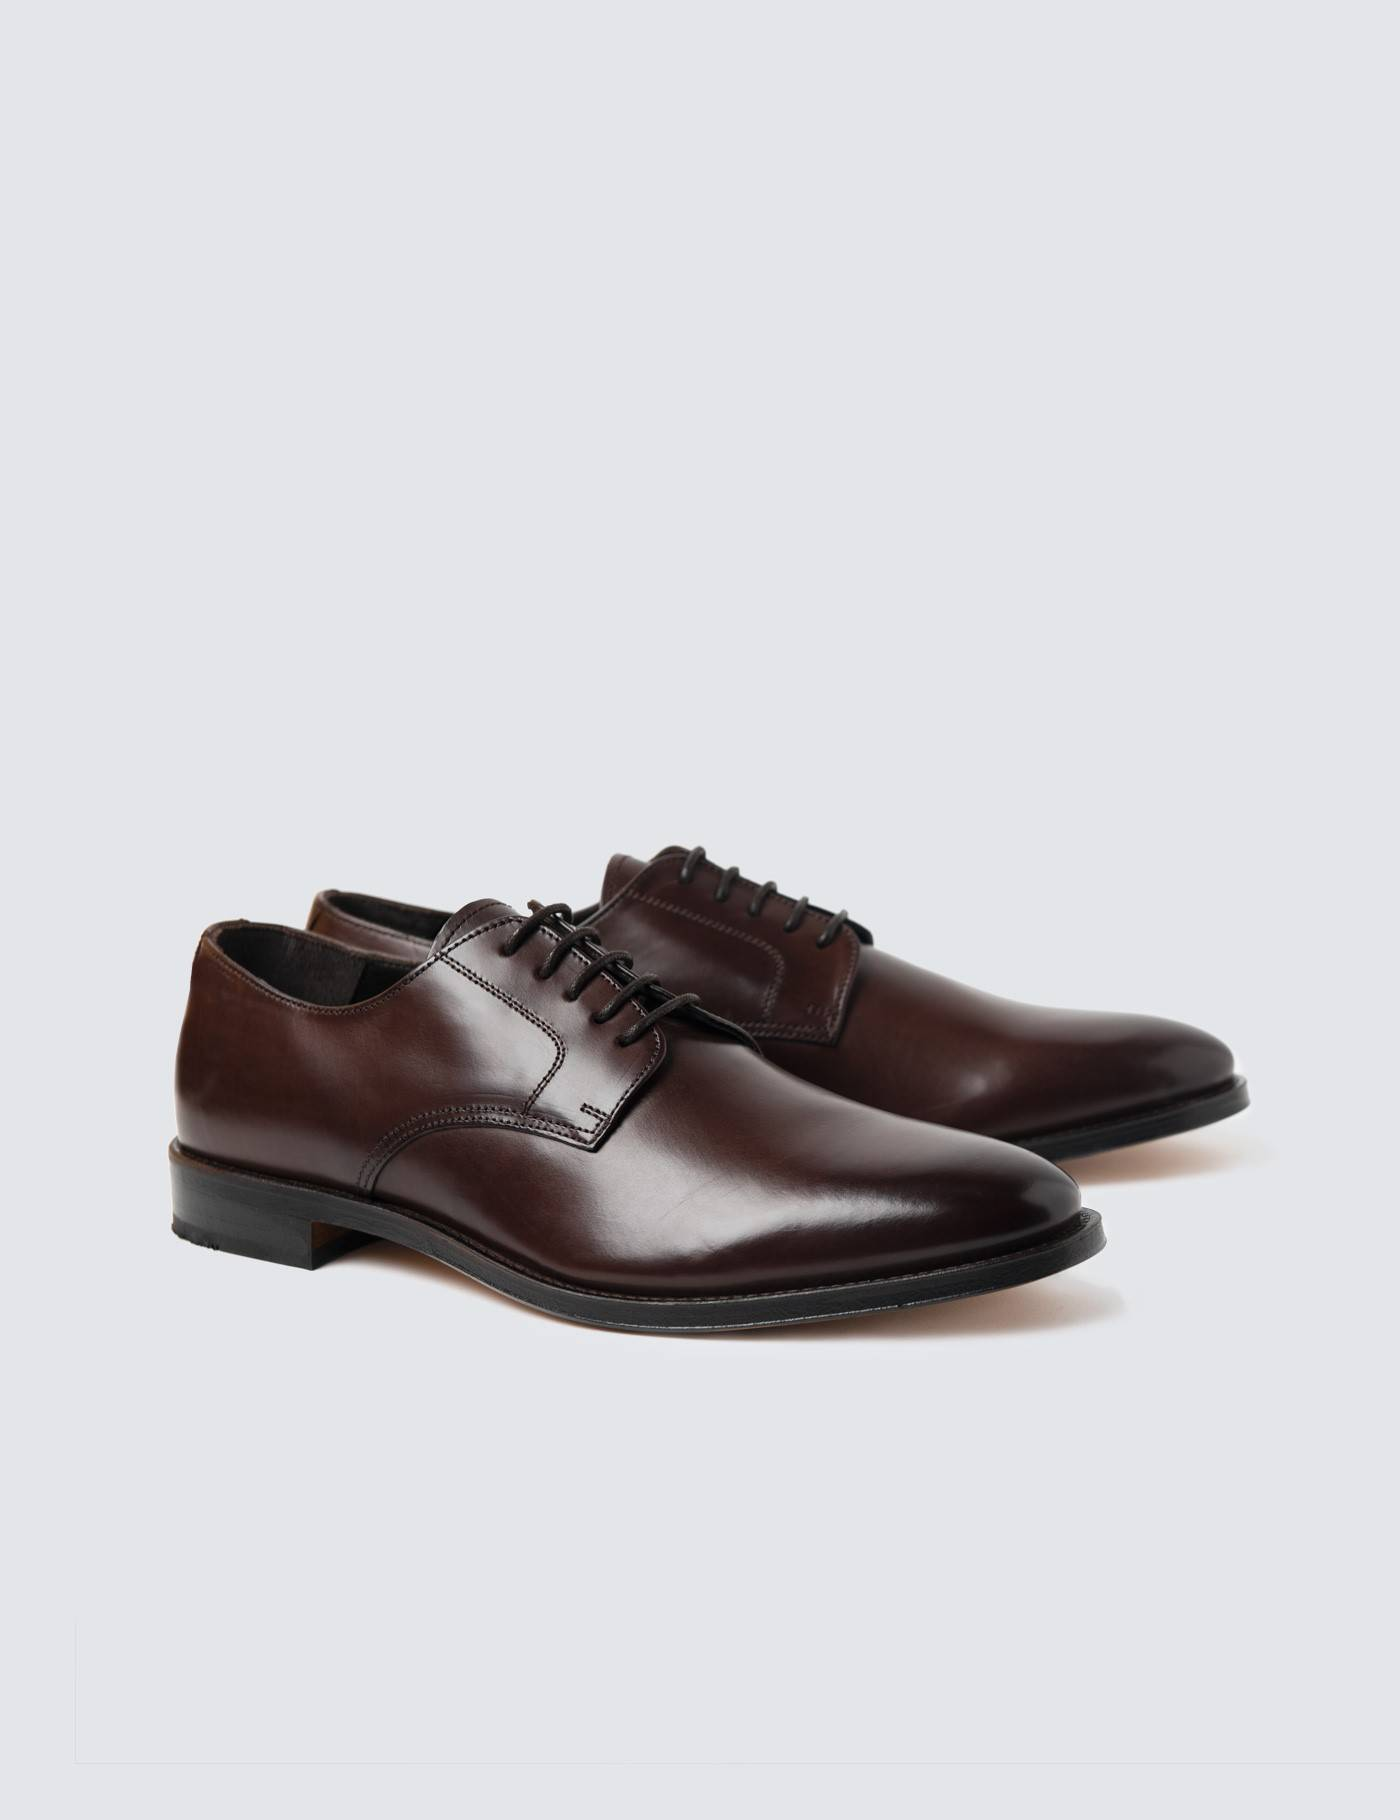 Hawes & Curtis Men's Leather Plain Derby Shoes in Brown Size 8.5 Hawes & Curtis